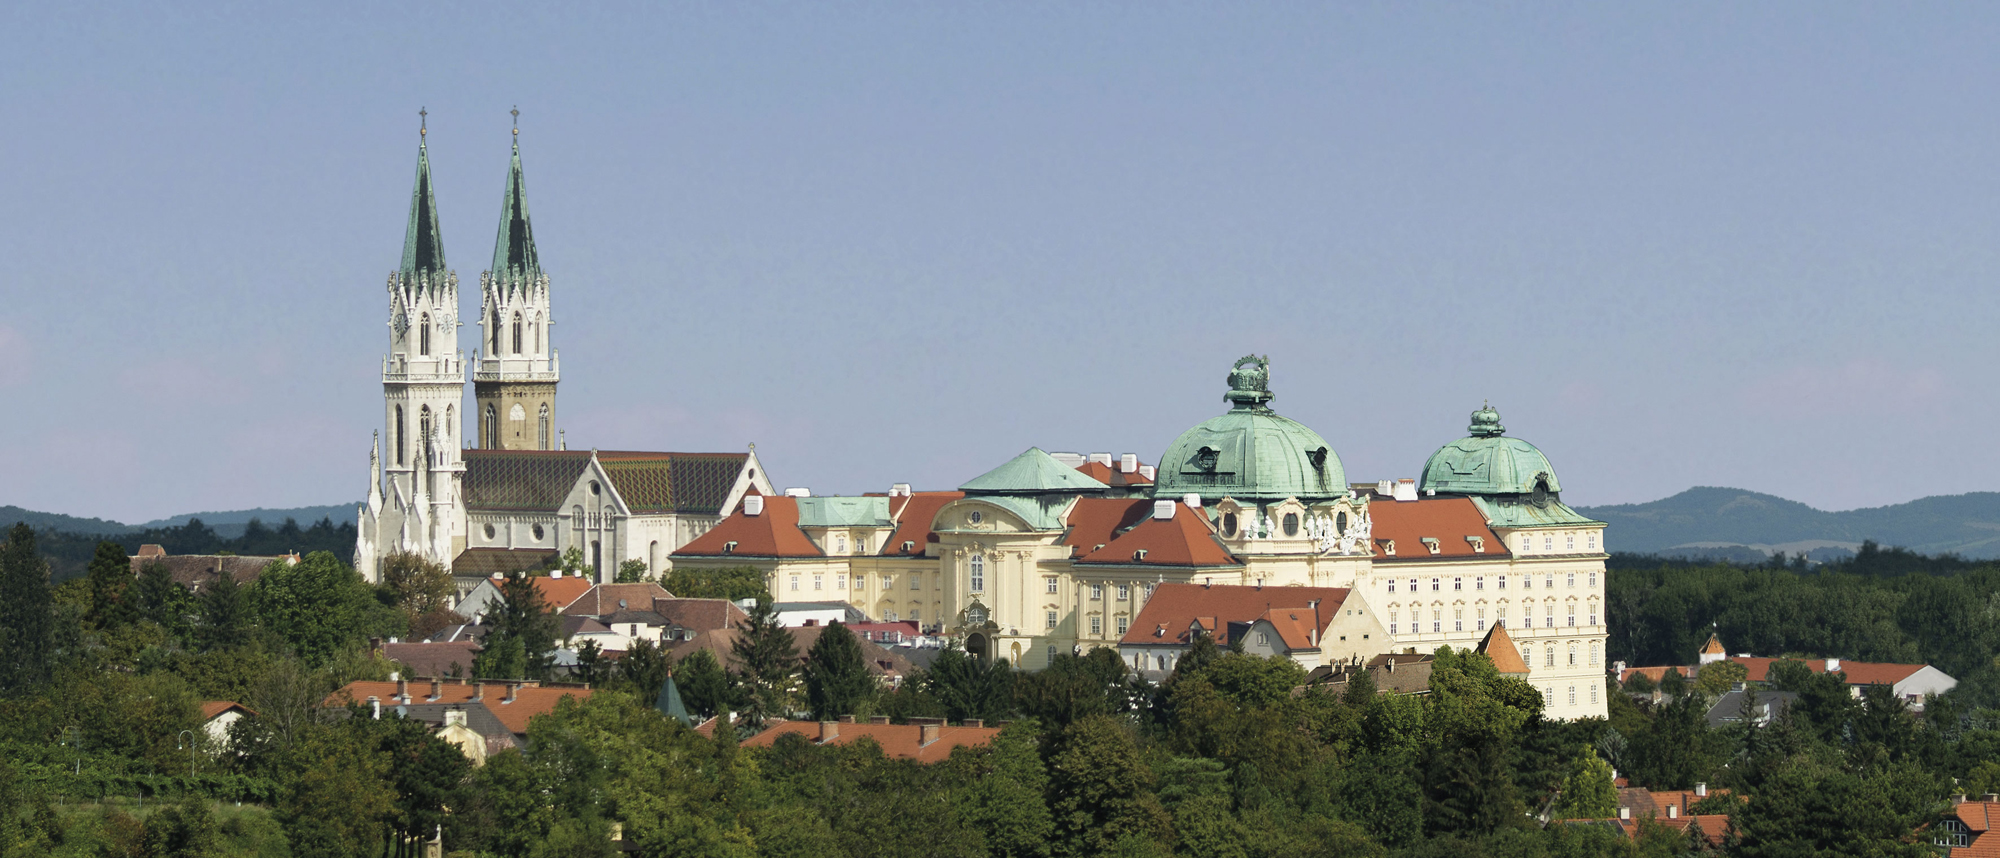 Stift Klosterneuburg © Michael Zechany